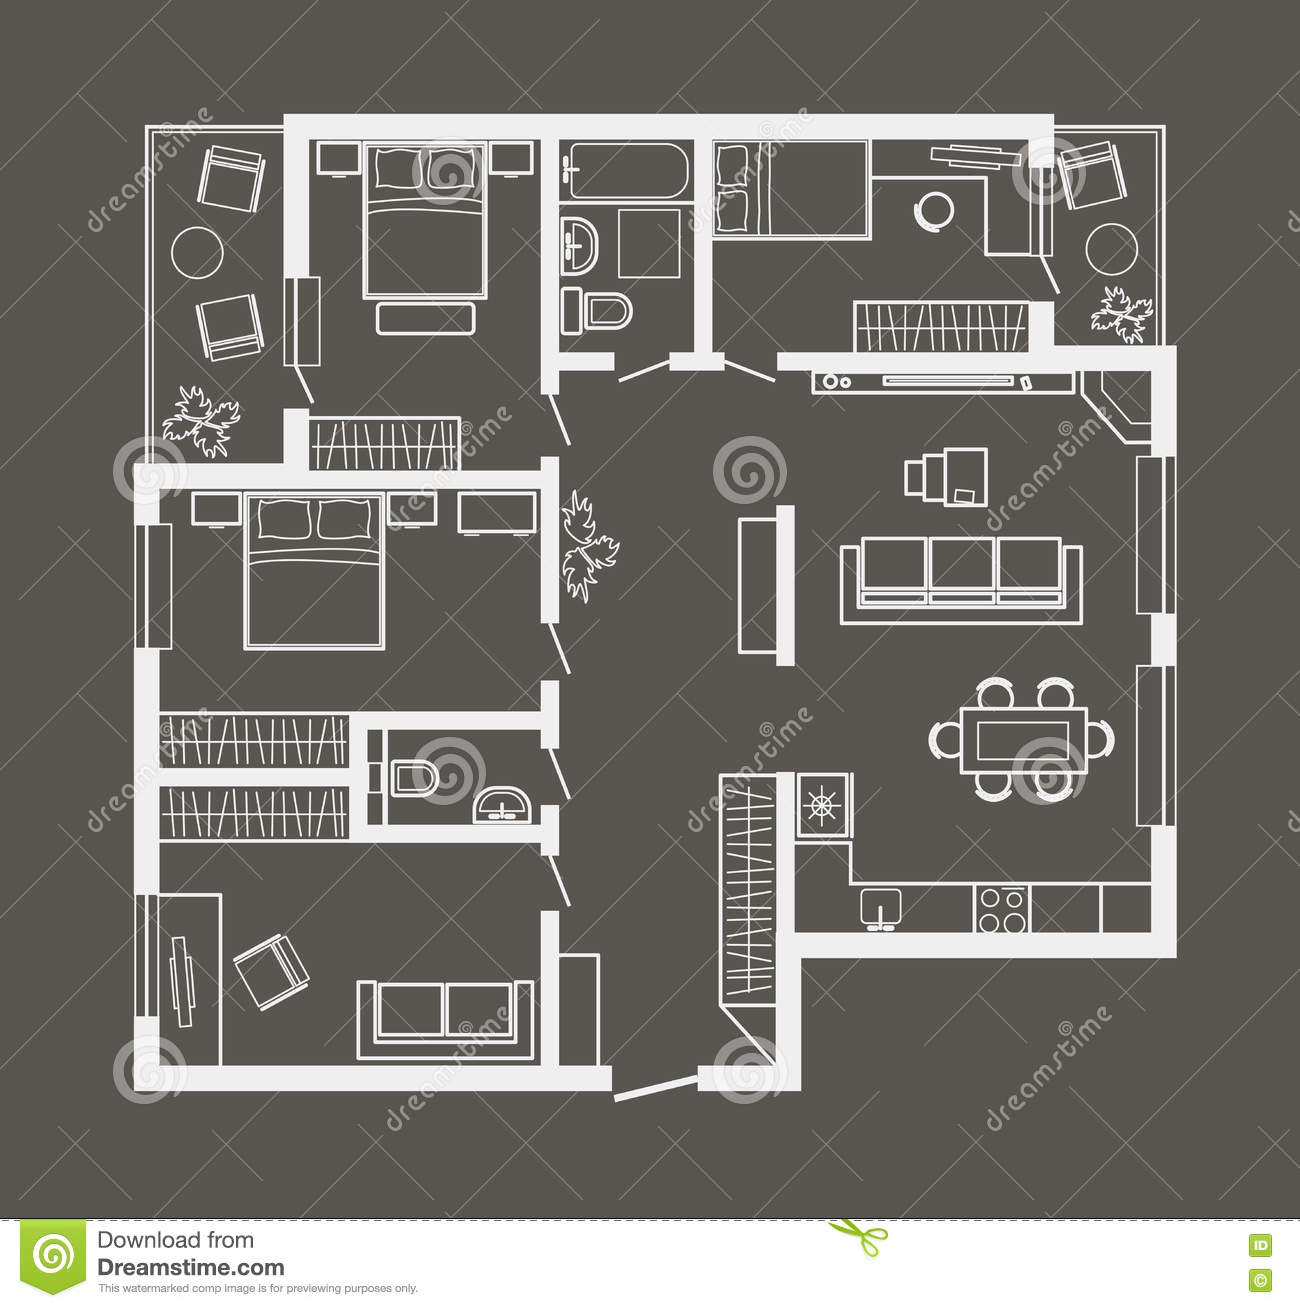 Four Bedroom Apartment Architectural Sketch Plan Of Four Bedroom Apartment On Gray